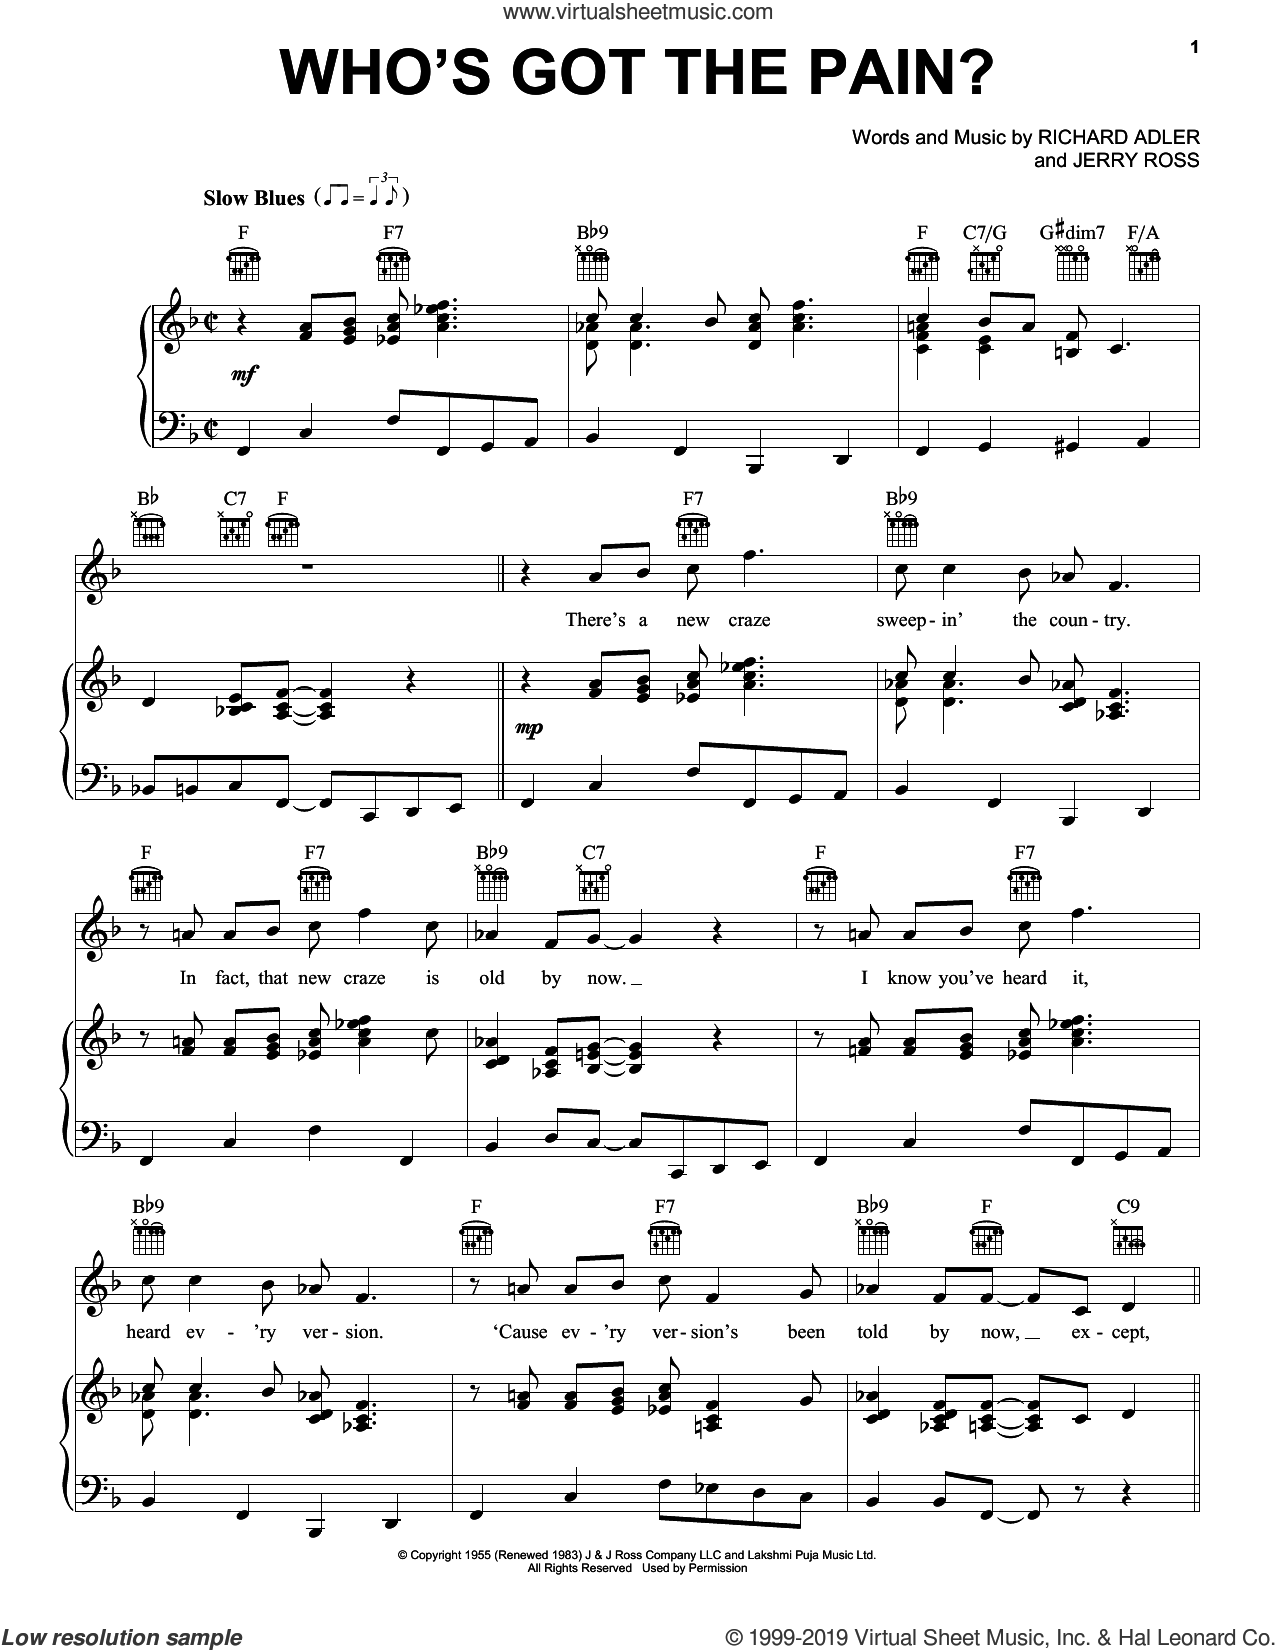 Who's Got The Pain? sheet music for voice, piano or guitar by Adler & Ross, Jerry Ross and Richard Adler, intermediate skill level